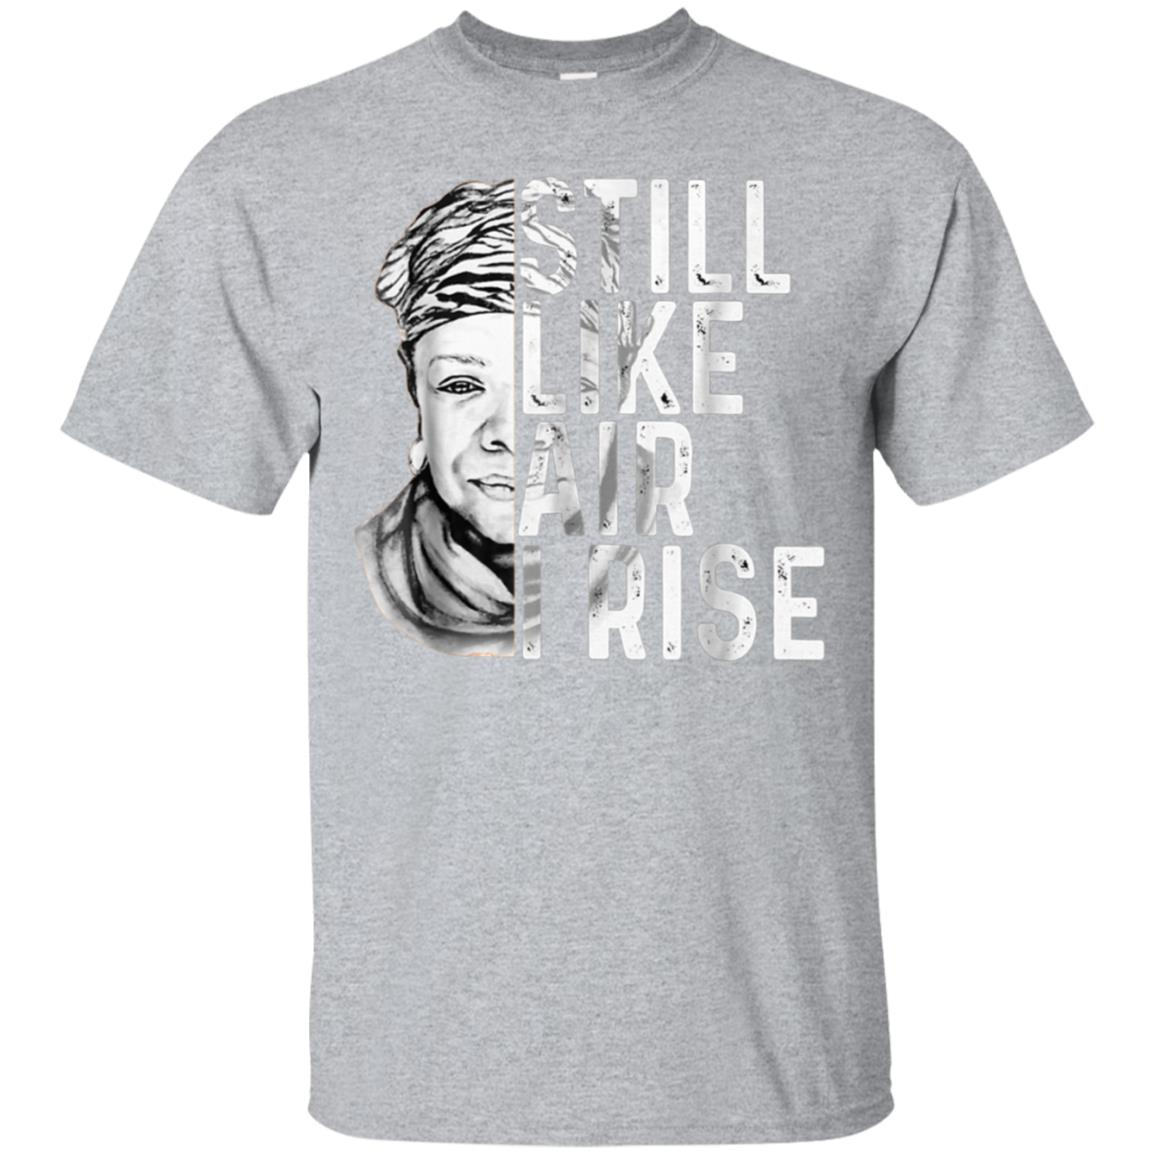 Still Like Air I Rise T Shirt Gift for Women Men 99promocode